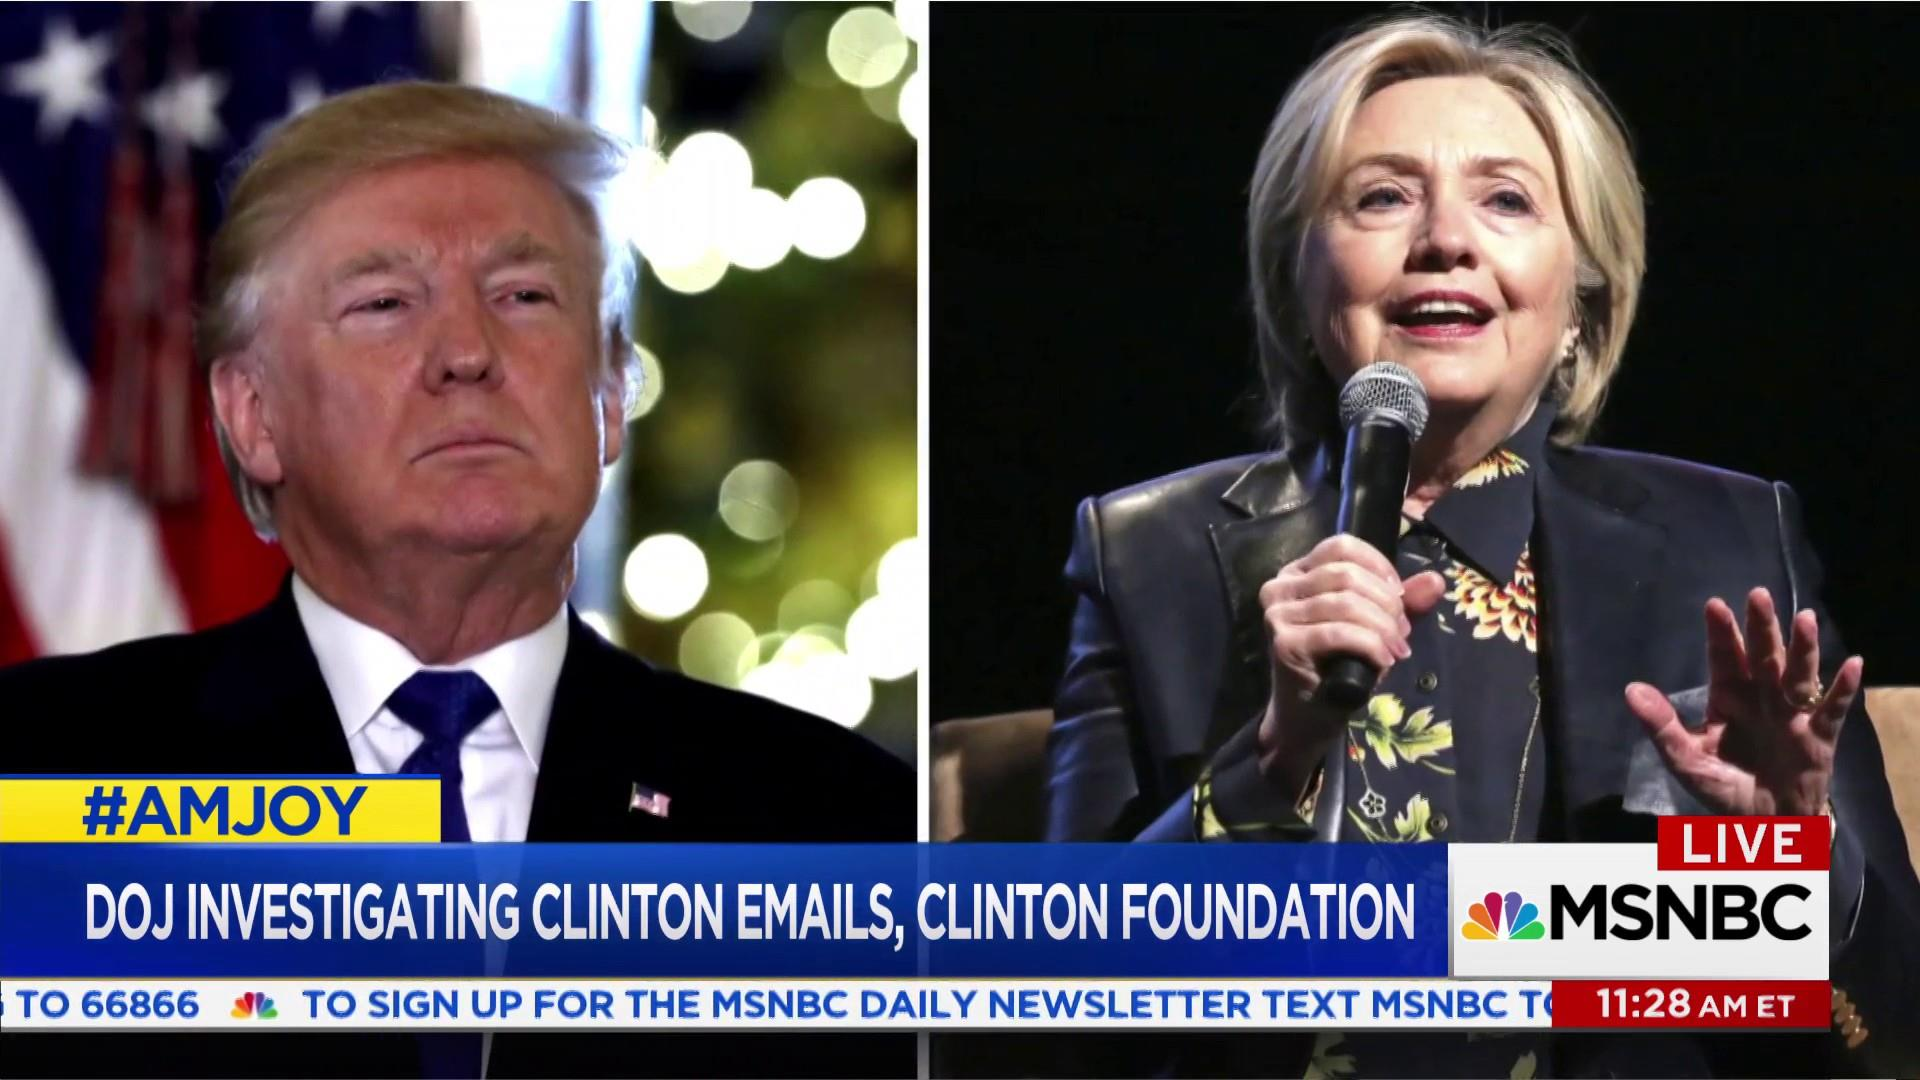 Is new Clinton Foundation probe a threat to our democracy?